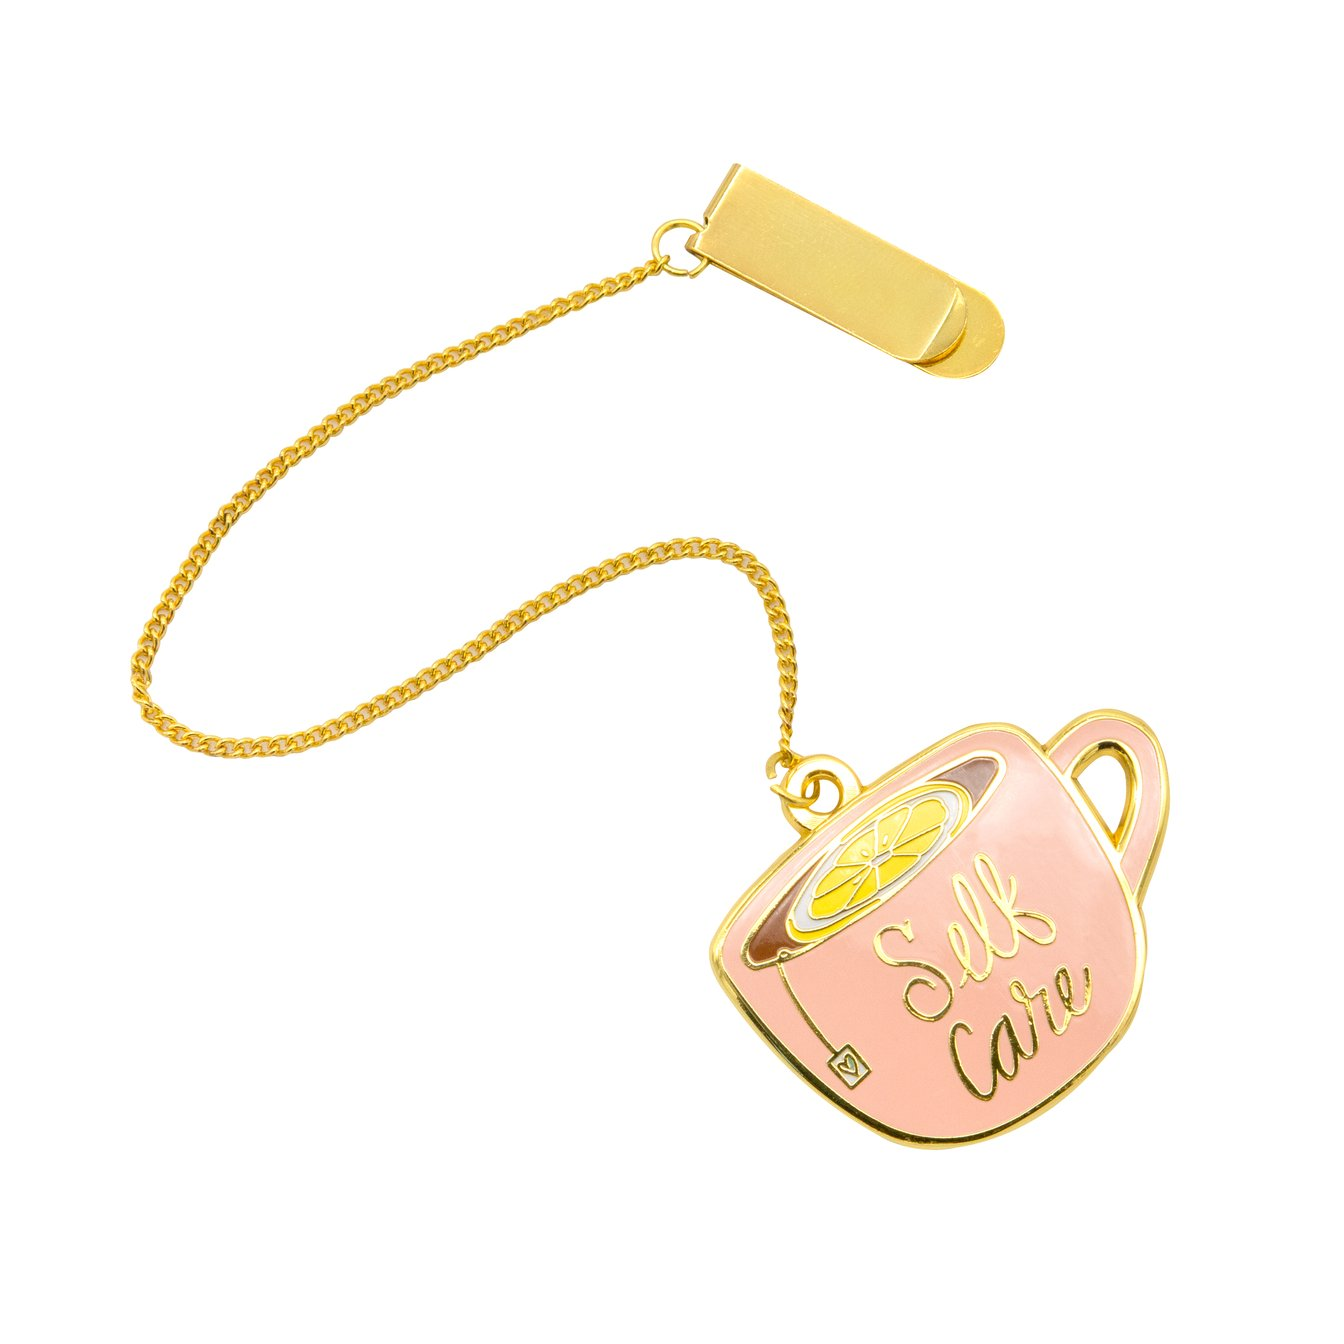 Tea cup charm with gold chain and bookmark clip